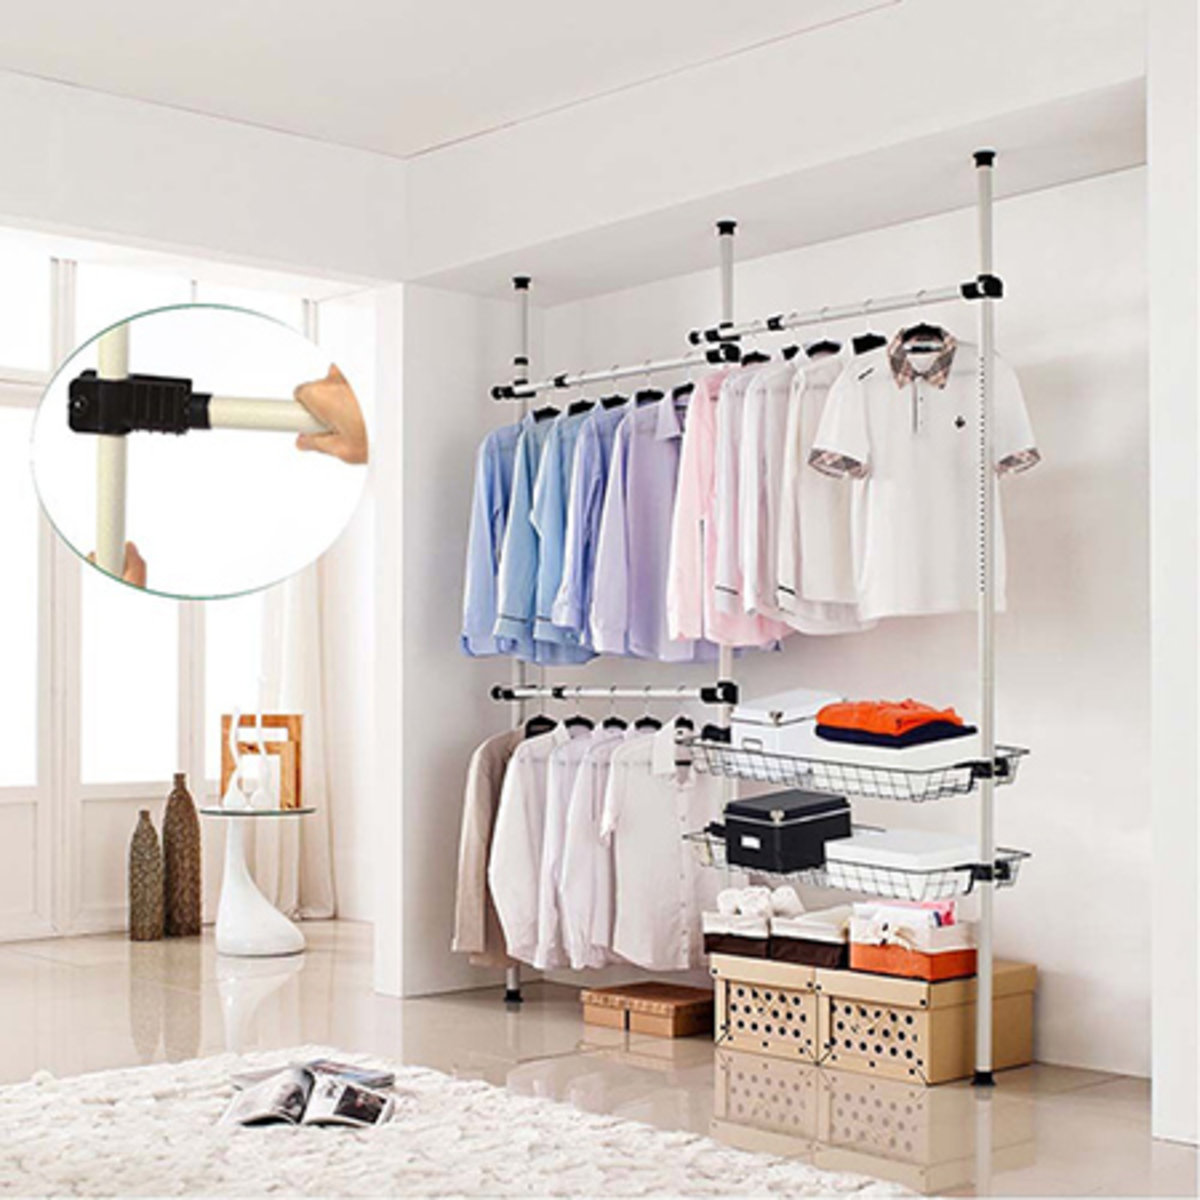 Floor To Ceiling 3 Poles Multi Function Clothes Rack With Basket White